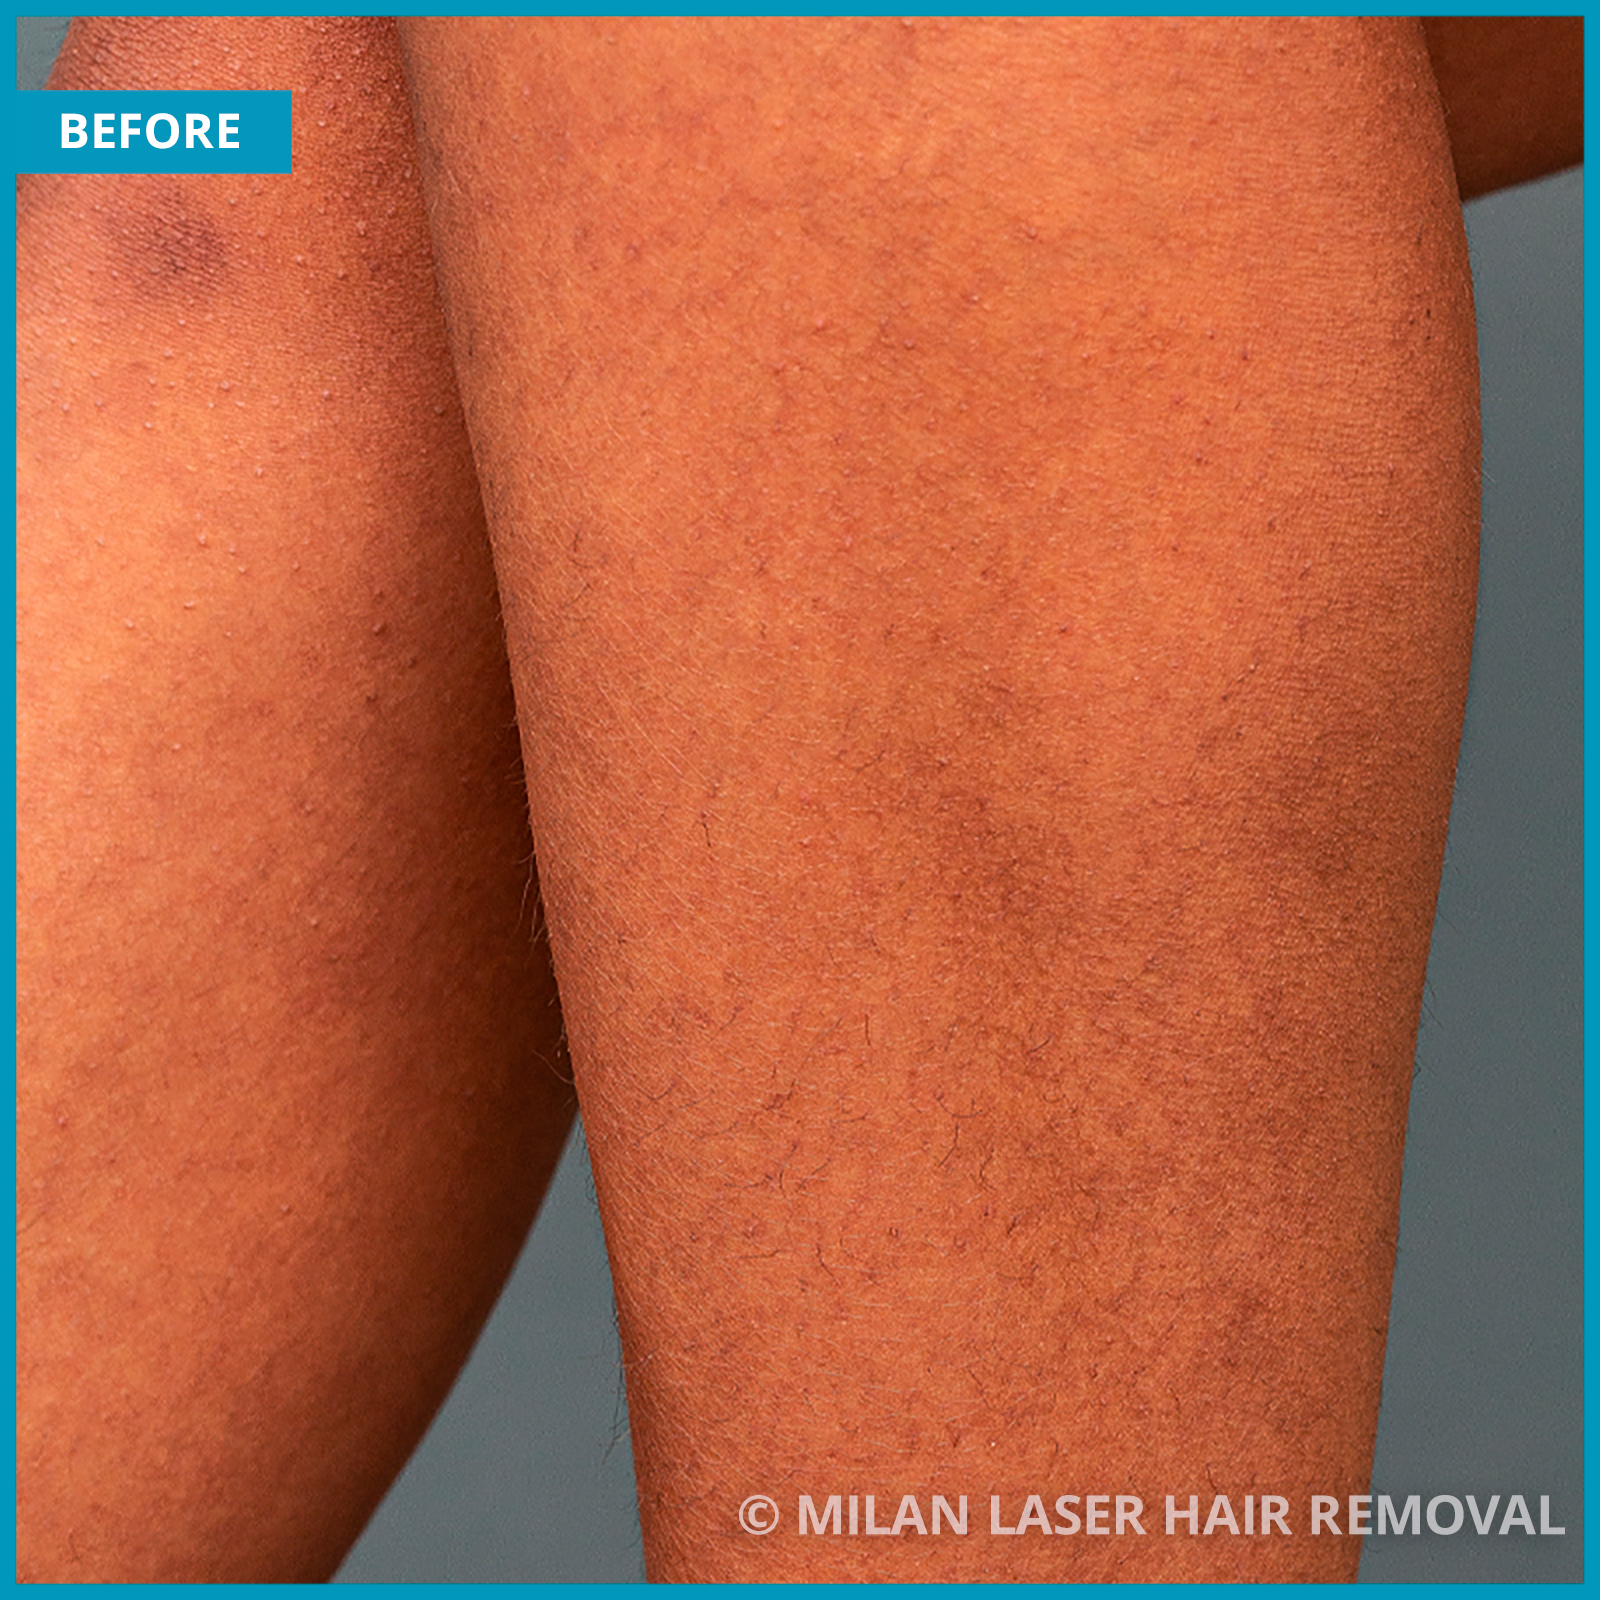 Before And After Images of Legs Style Laser Hair Removal